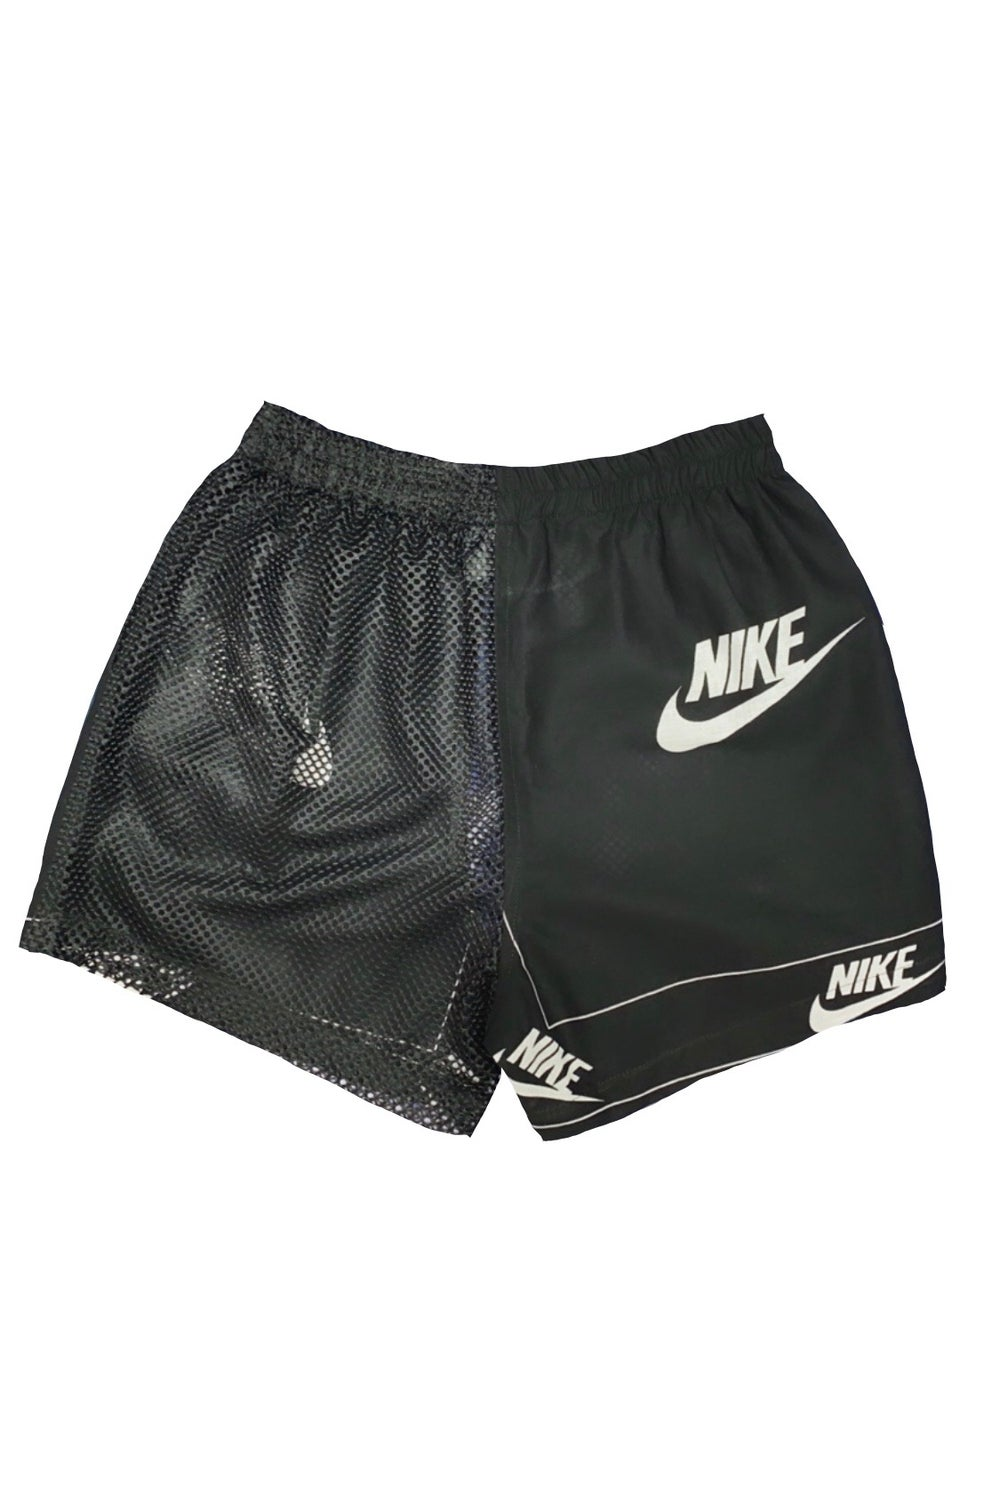 Image of 9IKE SHORTS-MESH